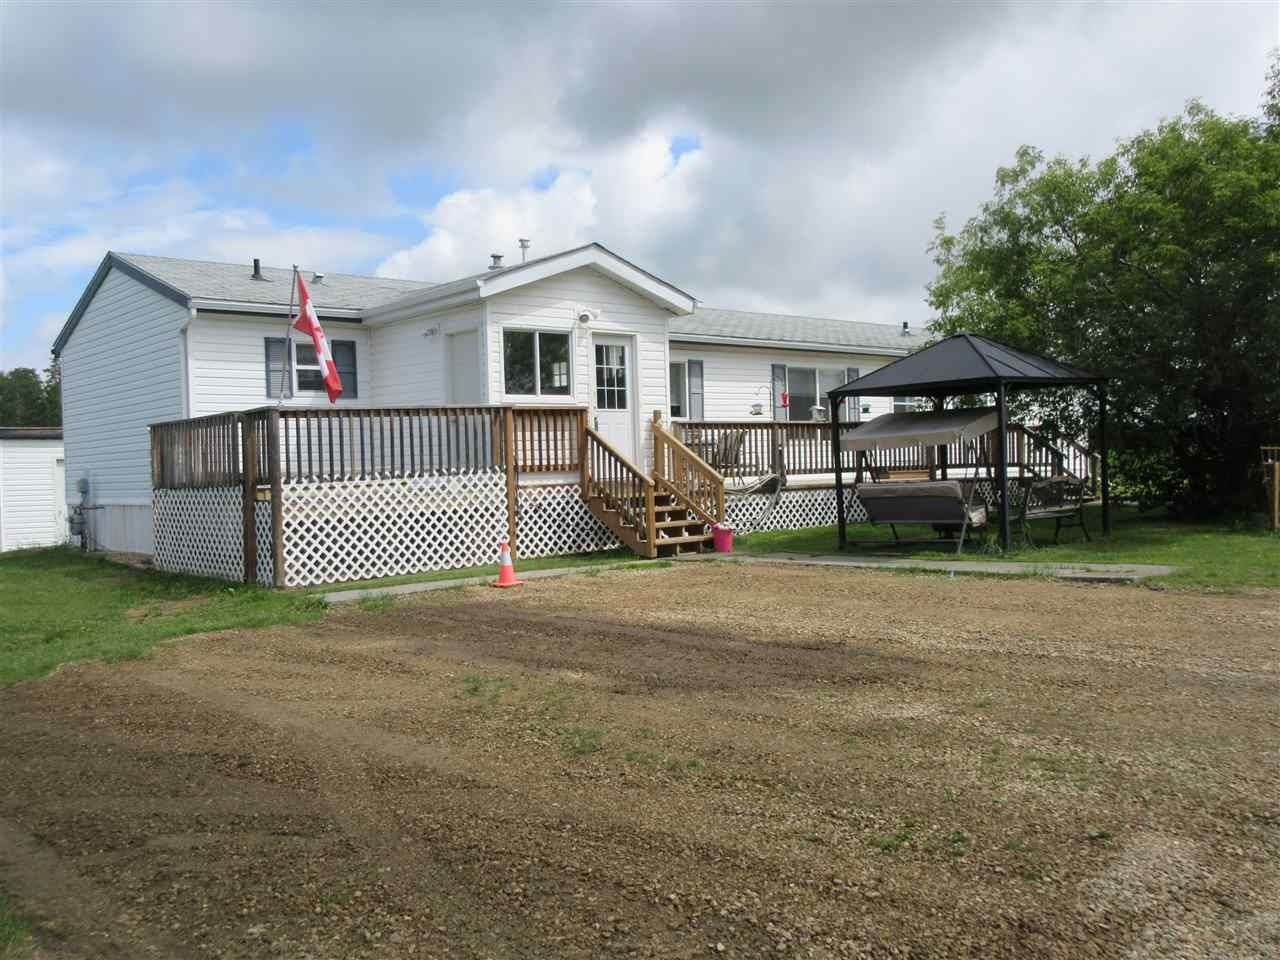 Main Photo: 27332 Sec Hwy 651: Rural Westlock County House for sale : MLS®# E4228685